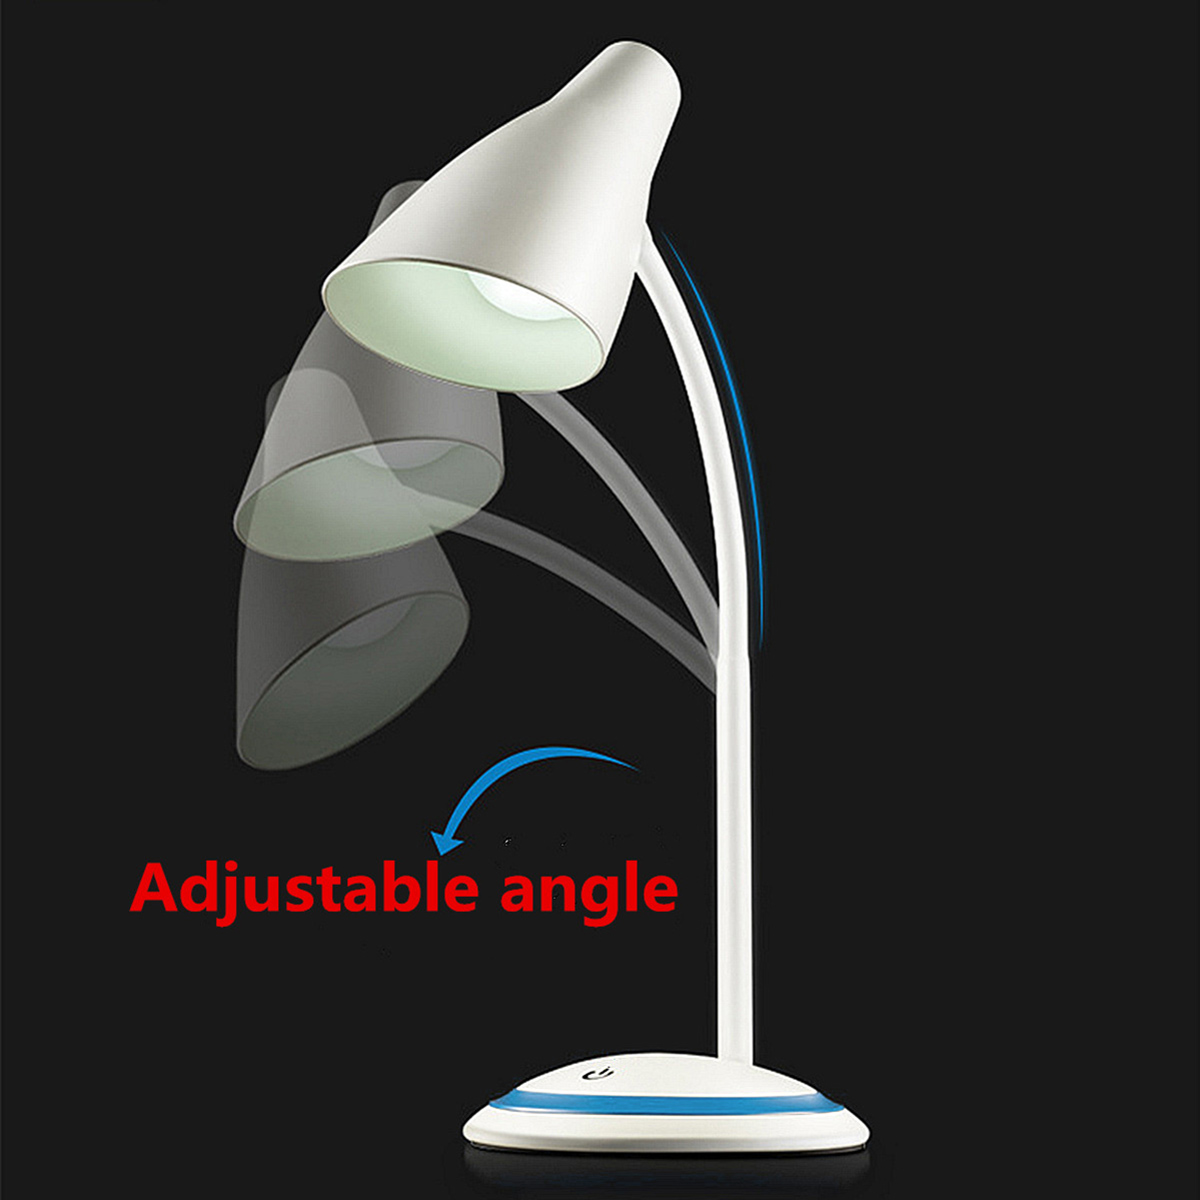 LED Flexible Table Lamp Desk Lamps Light Adjustable USB Rechargeable Touch Sensor for Student Study Reading Eye Protection light